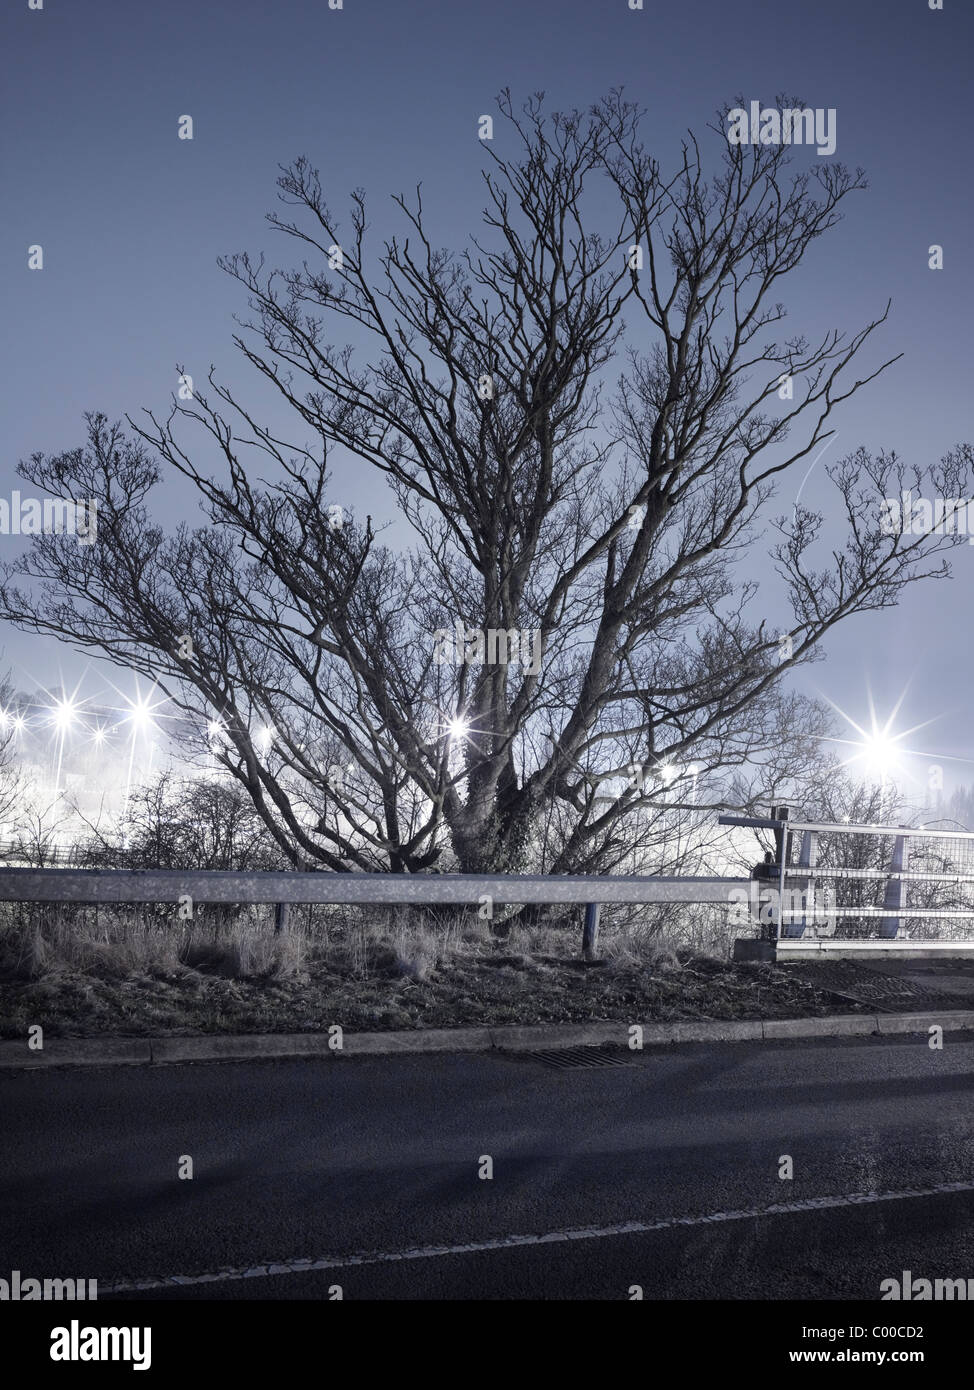 Road and trees lit by street lights at night with blue sky , taken by roadside locations - Stock Image